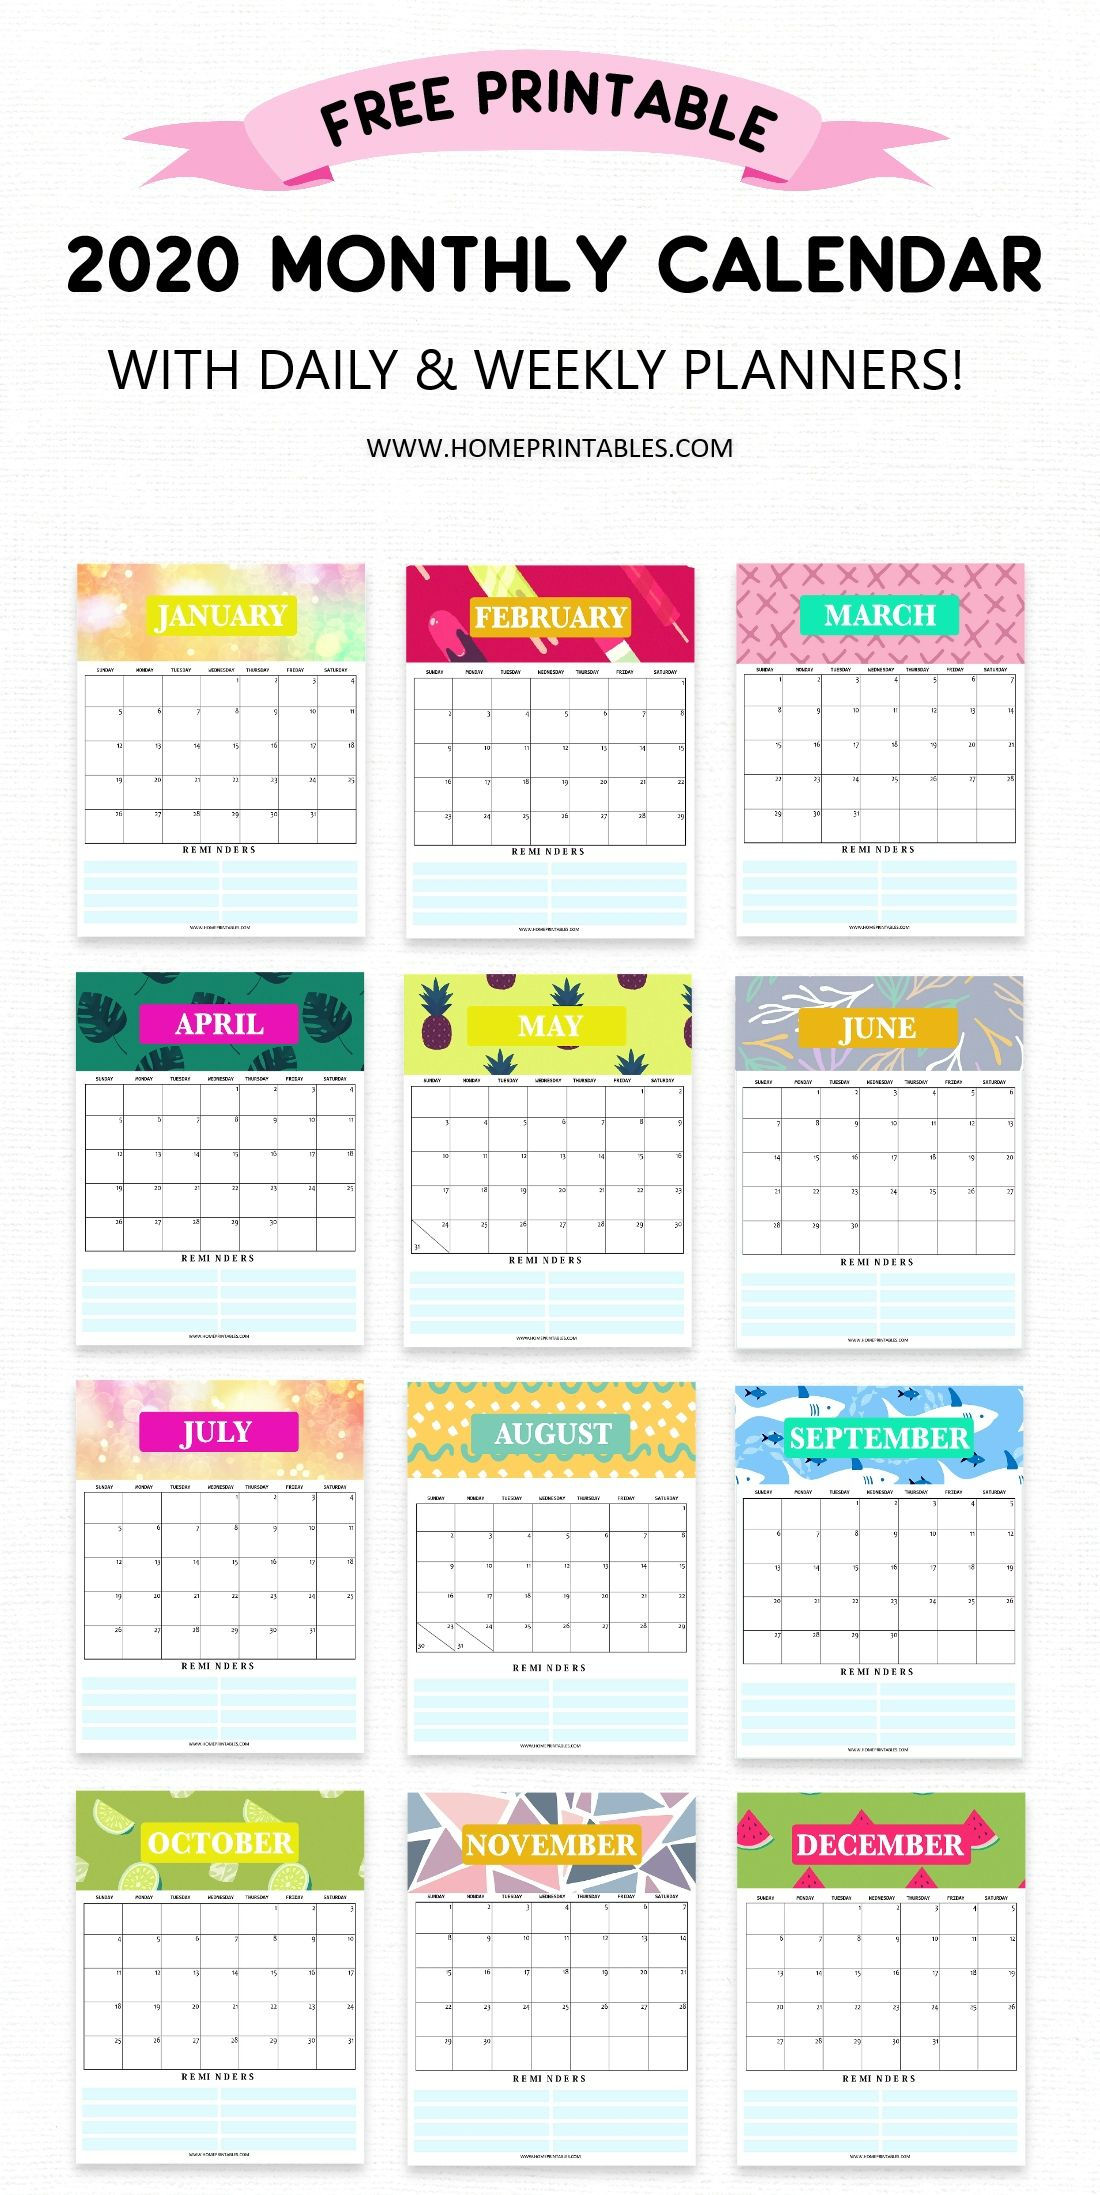 Free Calendar 2020 Printable With Weekly Planner: So Pretty